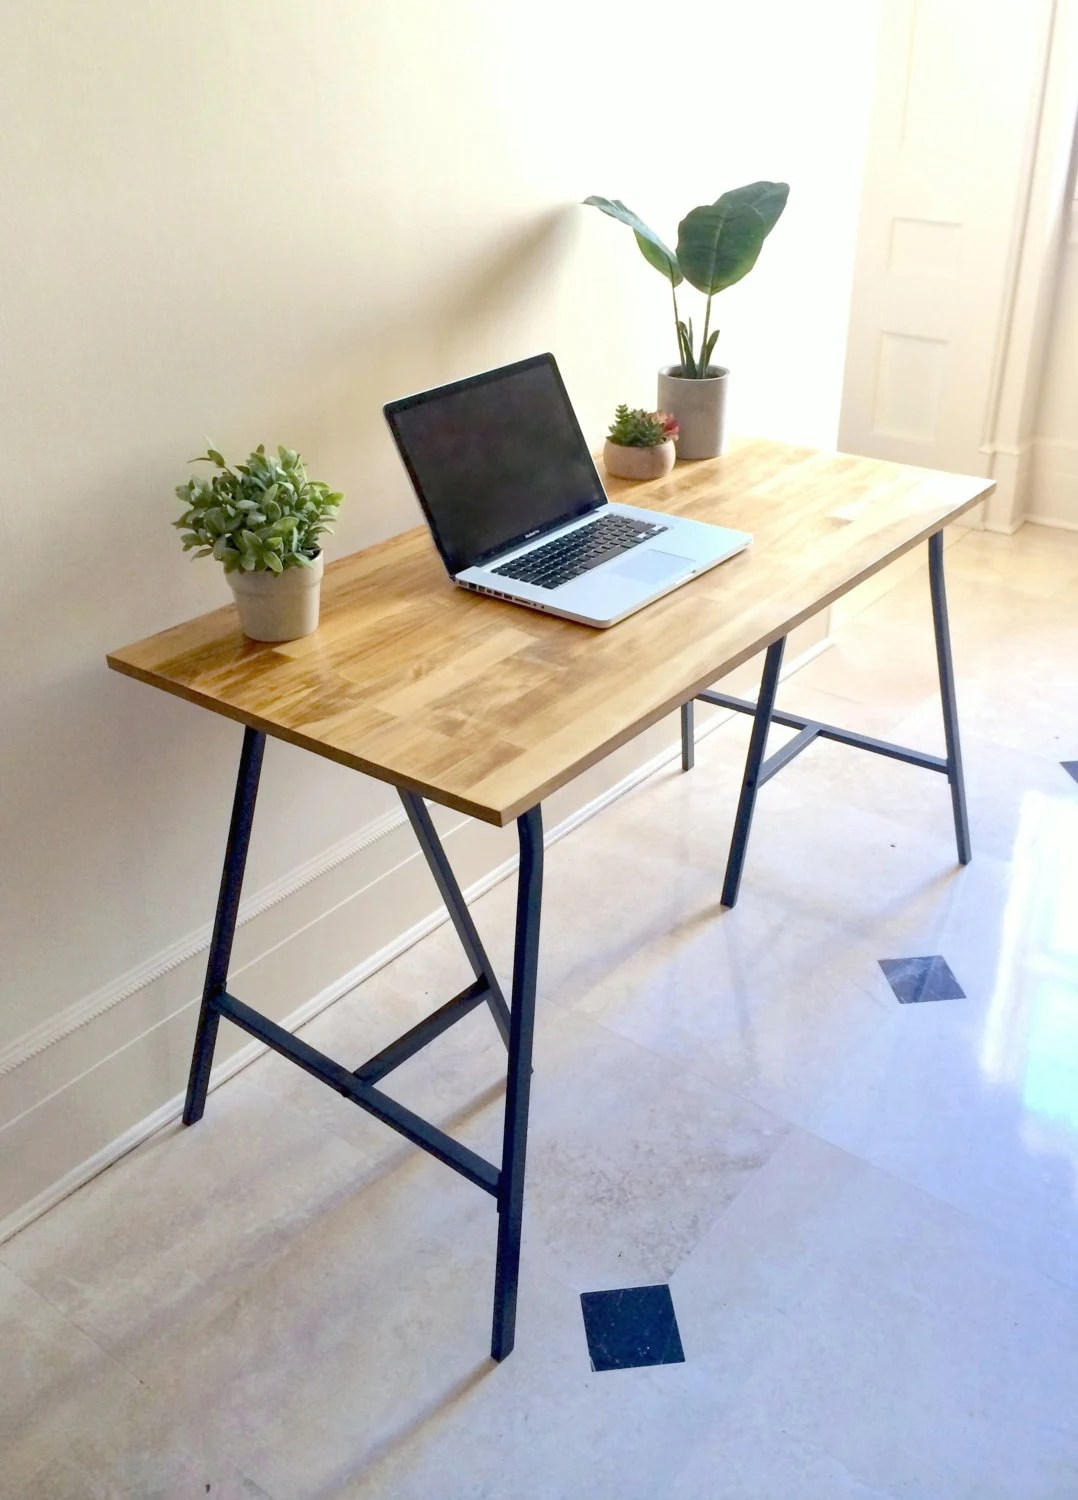 small kitchen table small kitchen table Long Narrow Desk Table on Ikea Legs CHOOSE ANY SIZE